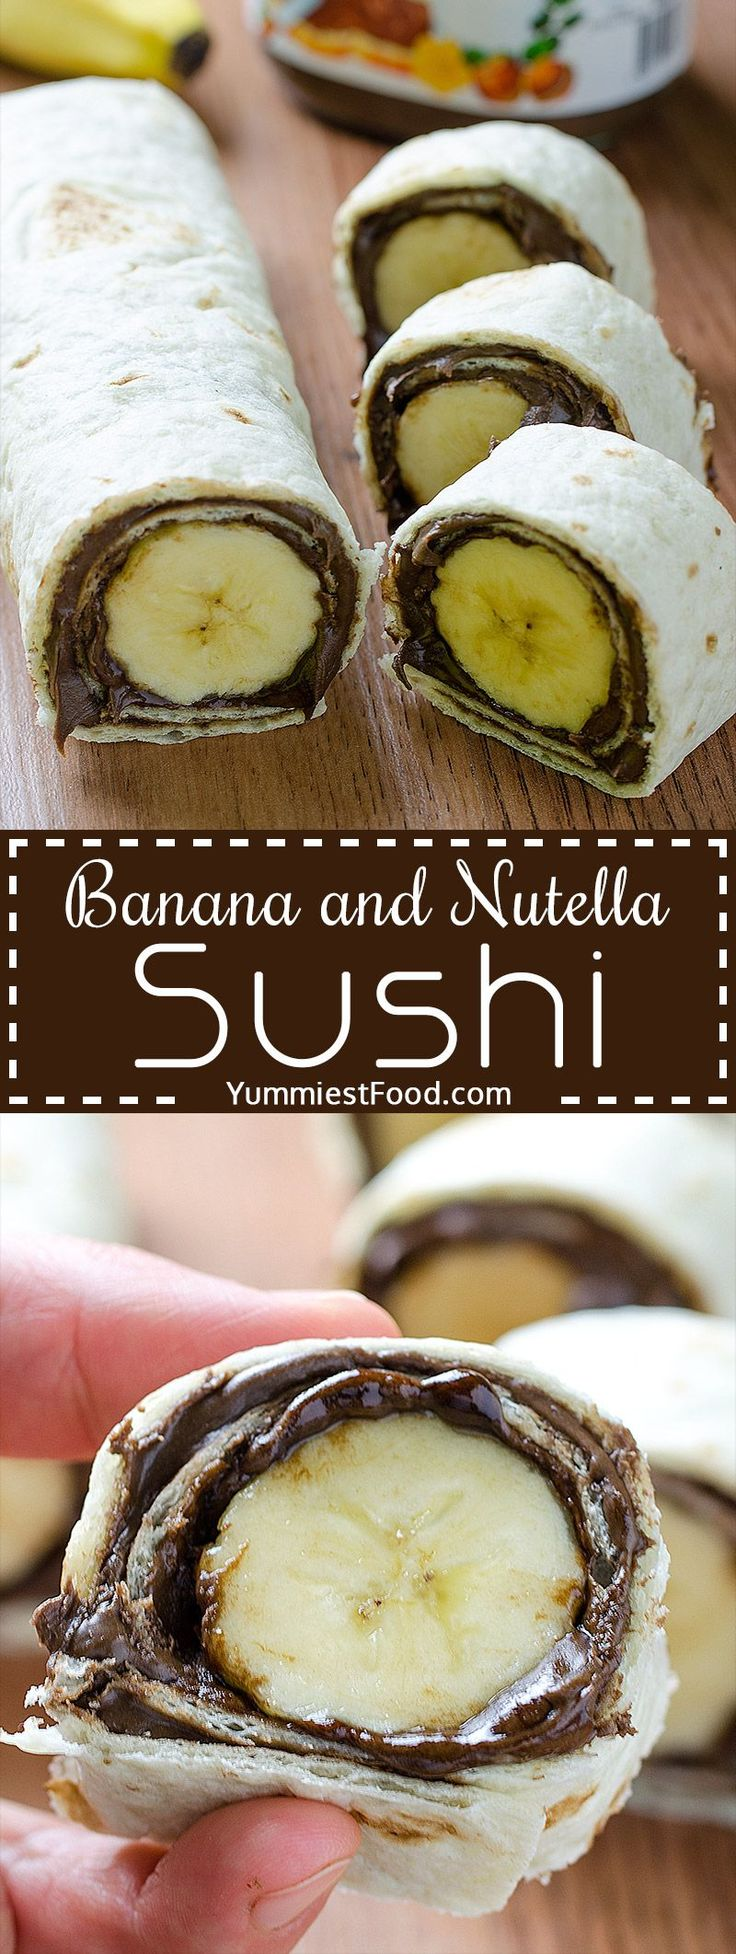 Delicious, cute, easy and quick! Easy and healthy snack! Kids will love this banana and Nutella sushi!